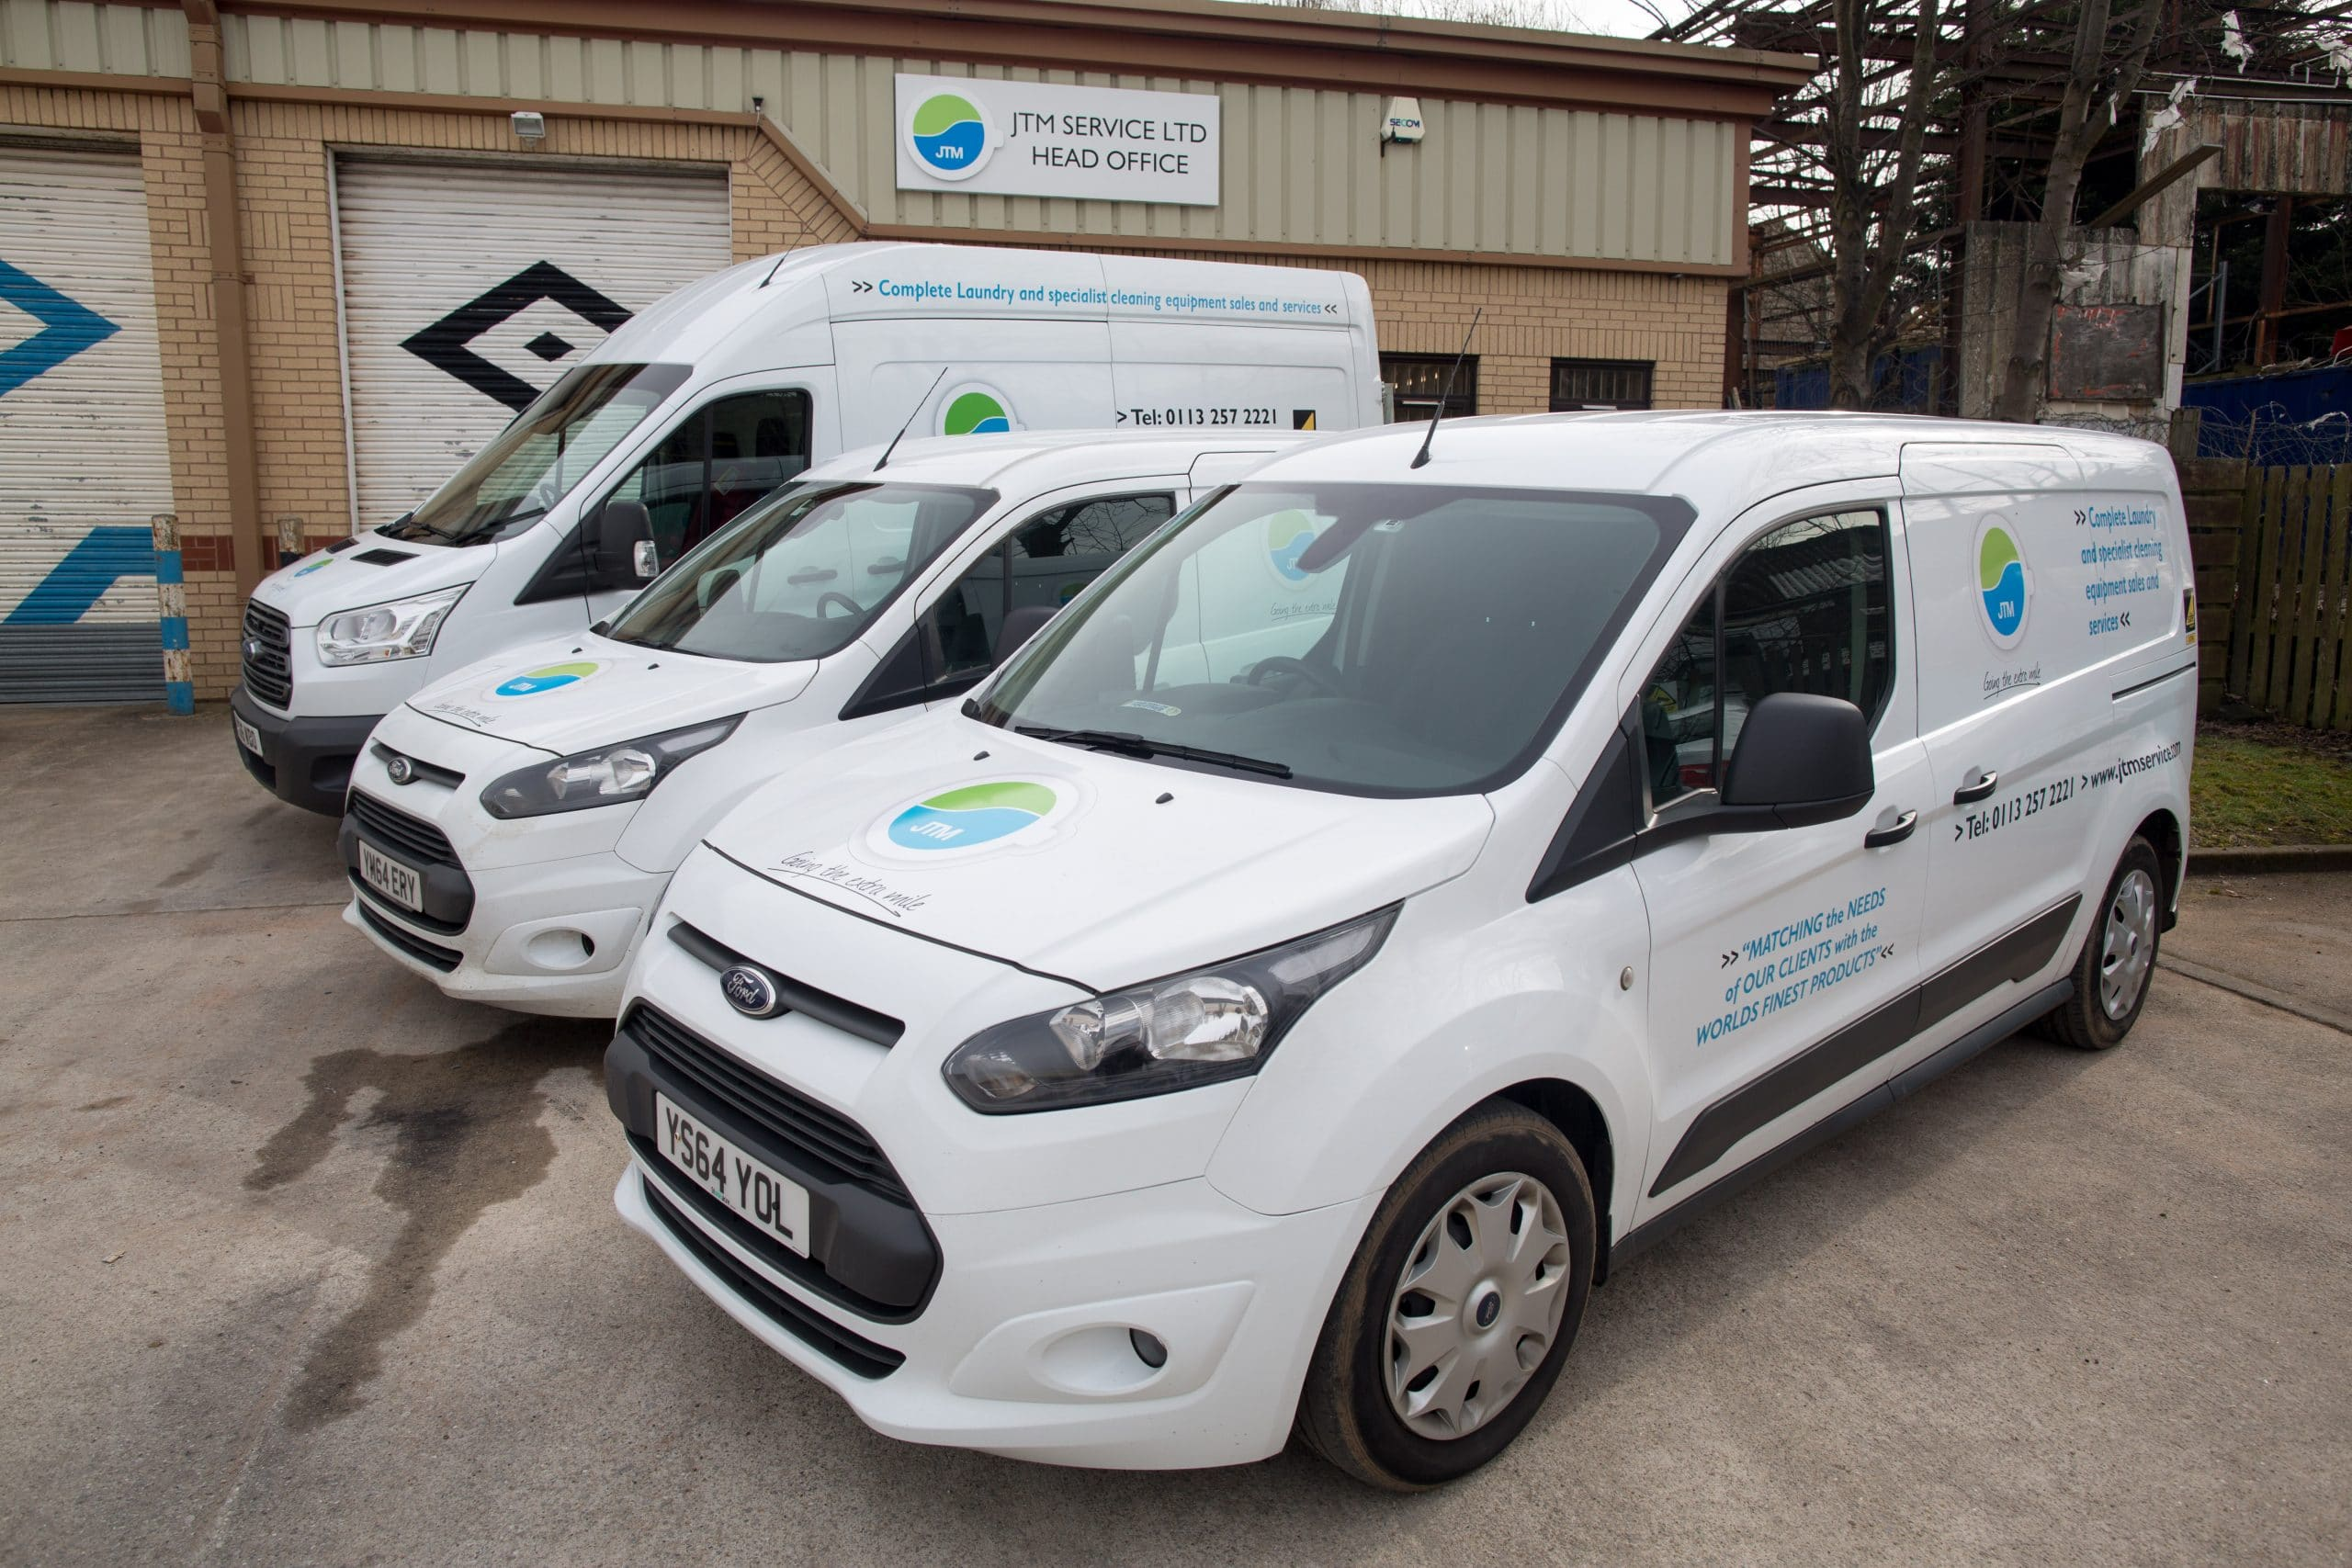 JTM Leeds based commercial laundry rentals and servicing